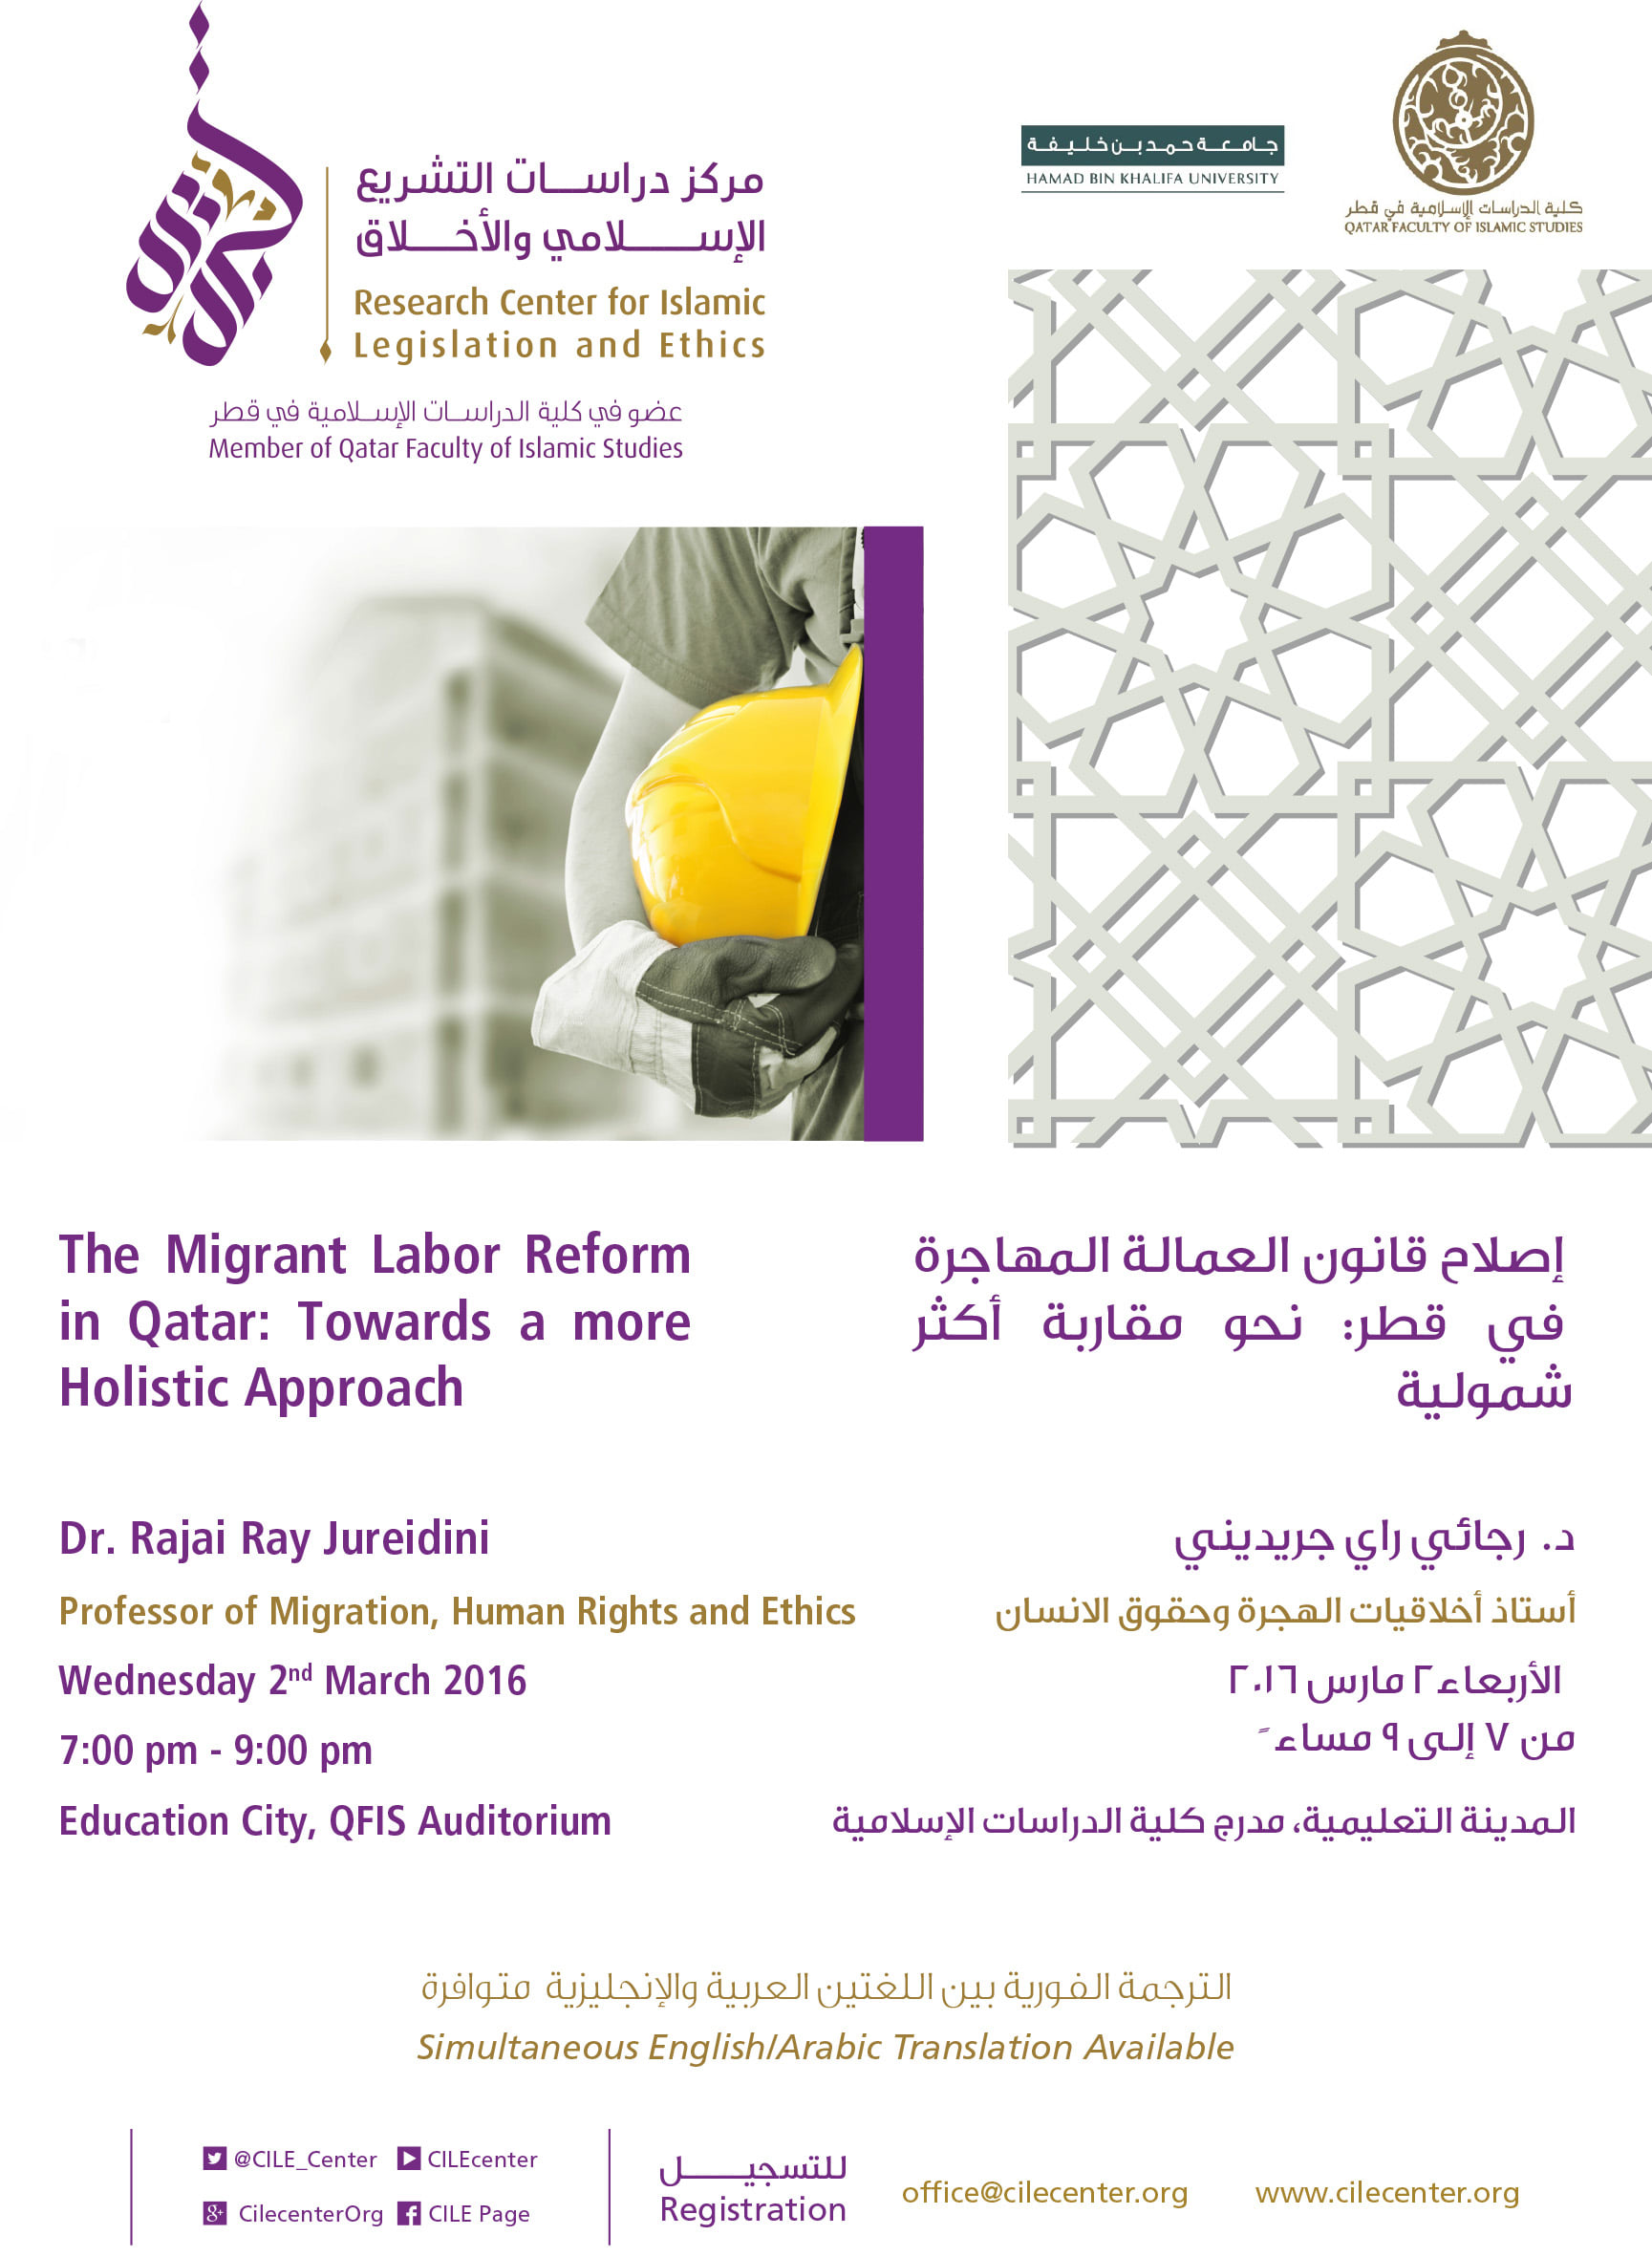 03/2016 The Migrant Labor Reform in Qatar: Towards a more Holistic Approach